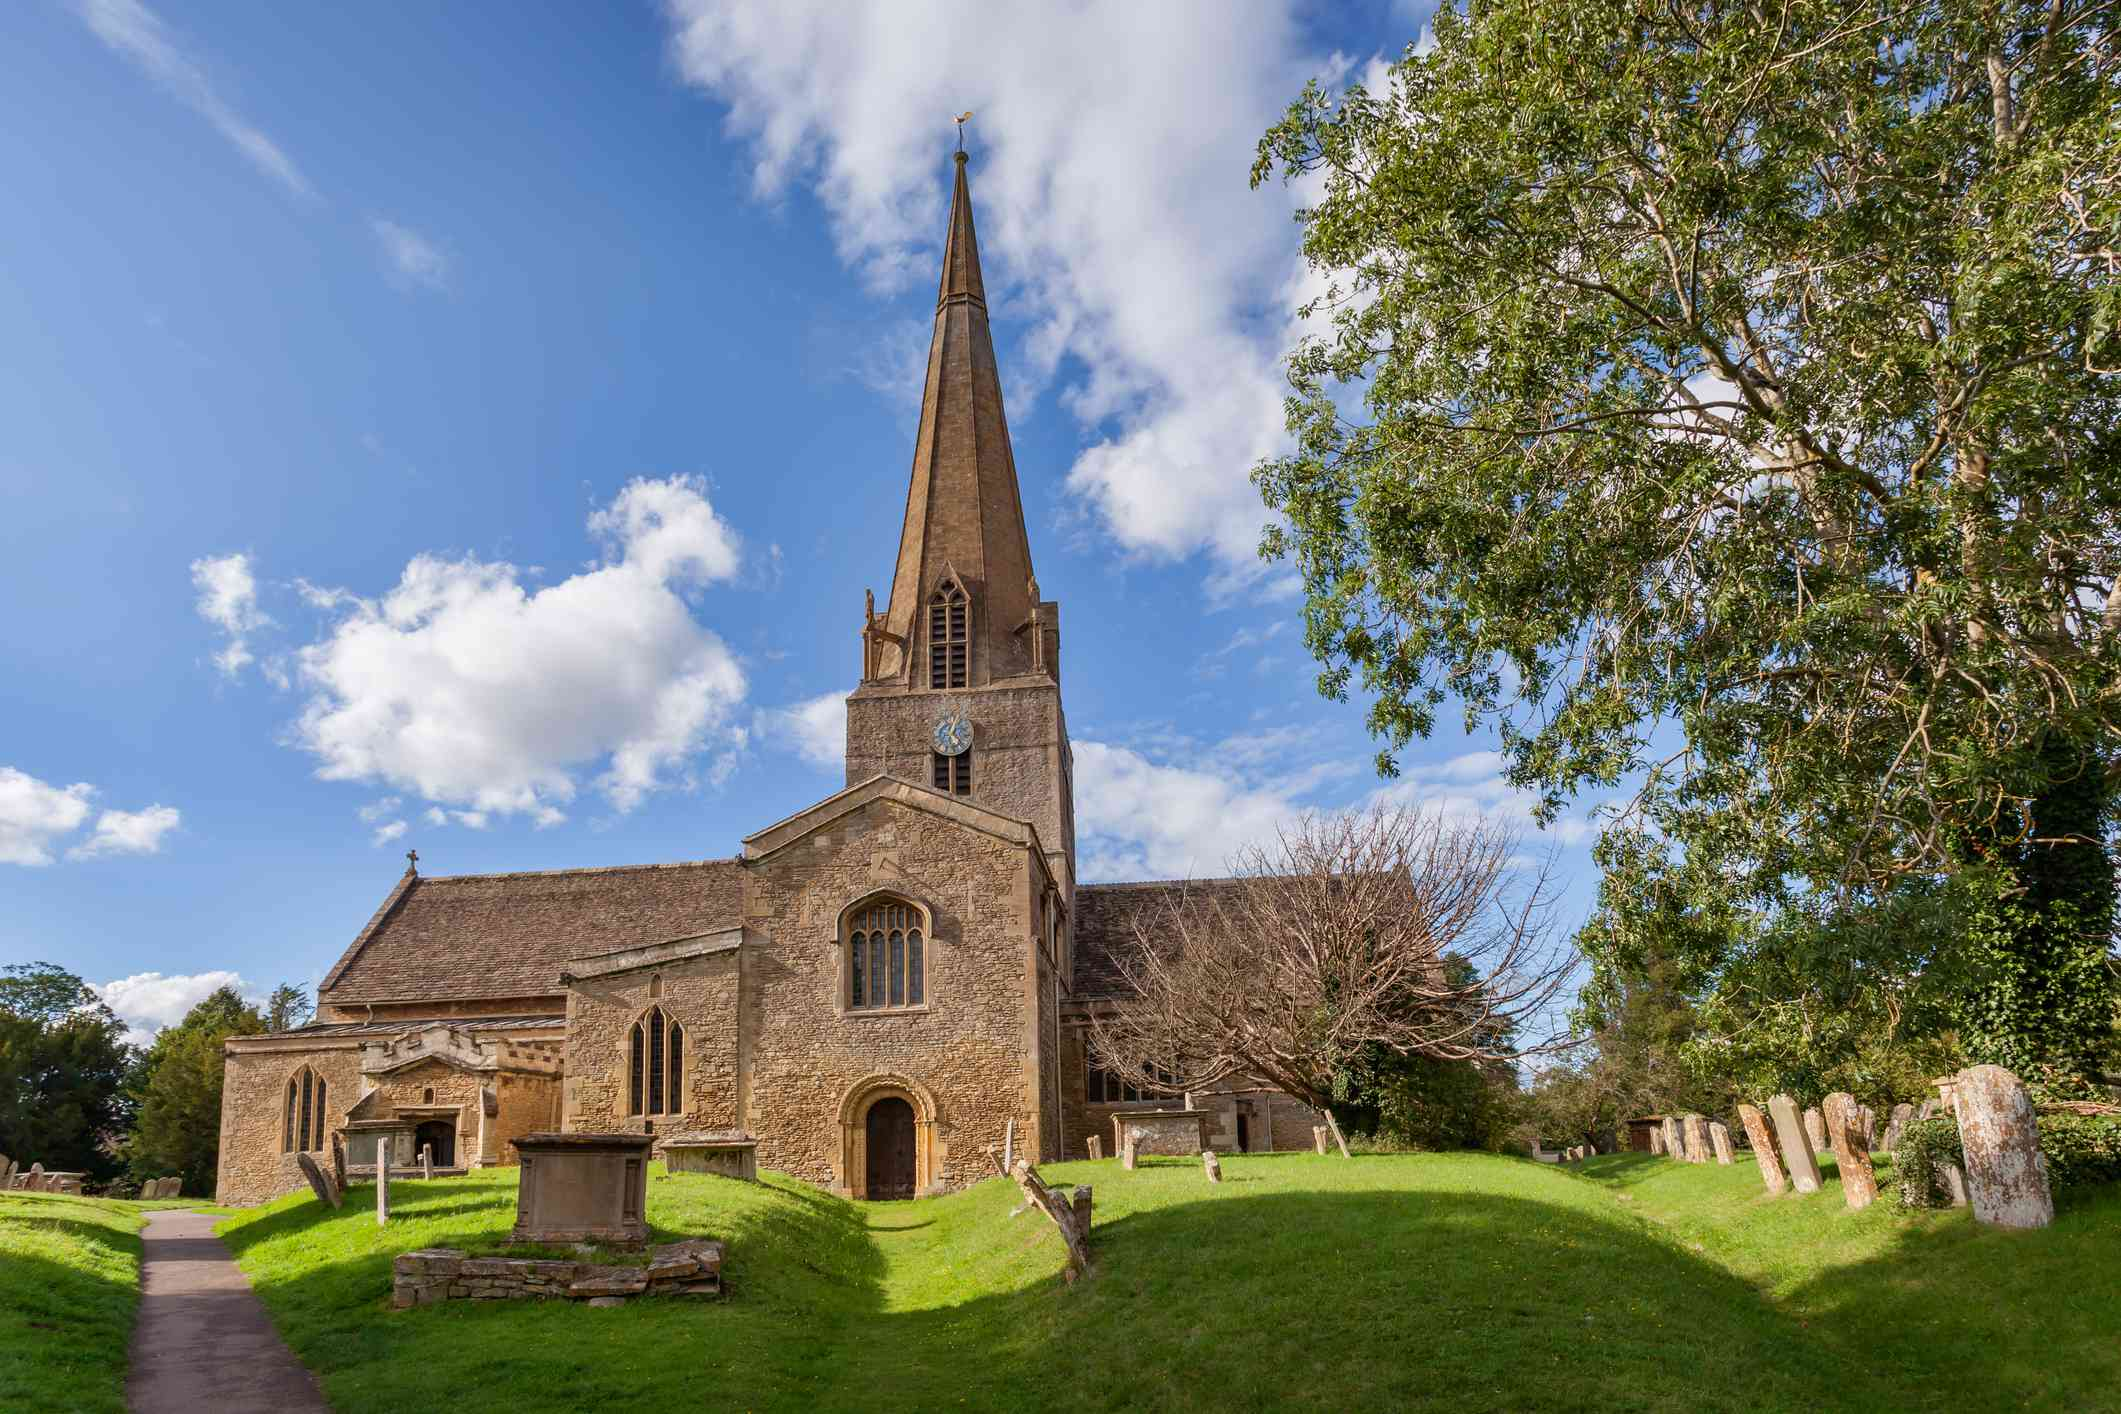 St Mary's Church in Bampton, Oxfordshire, England